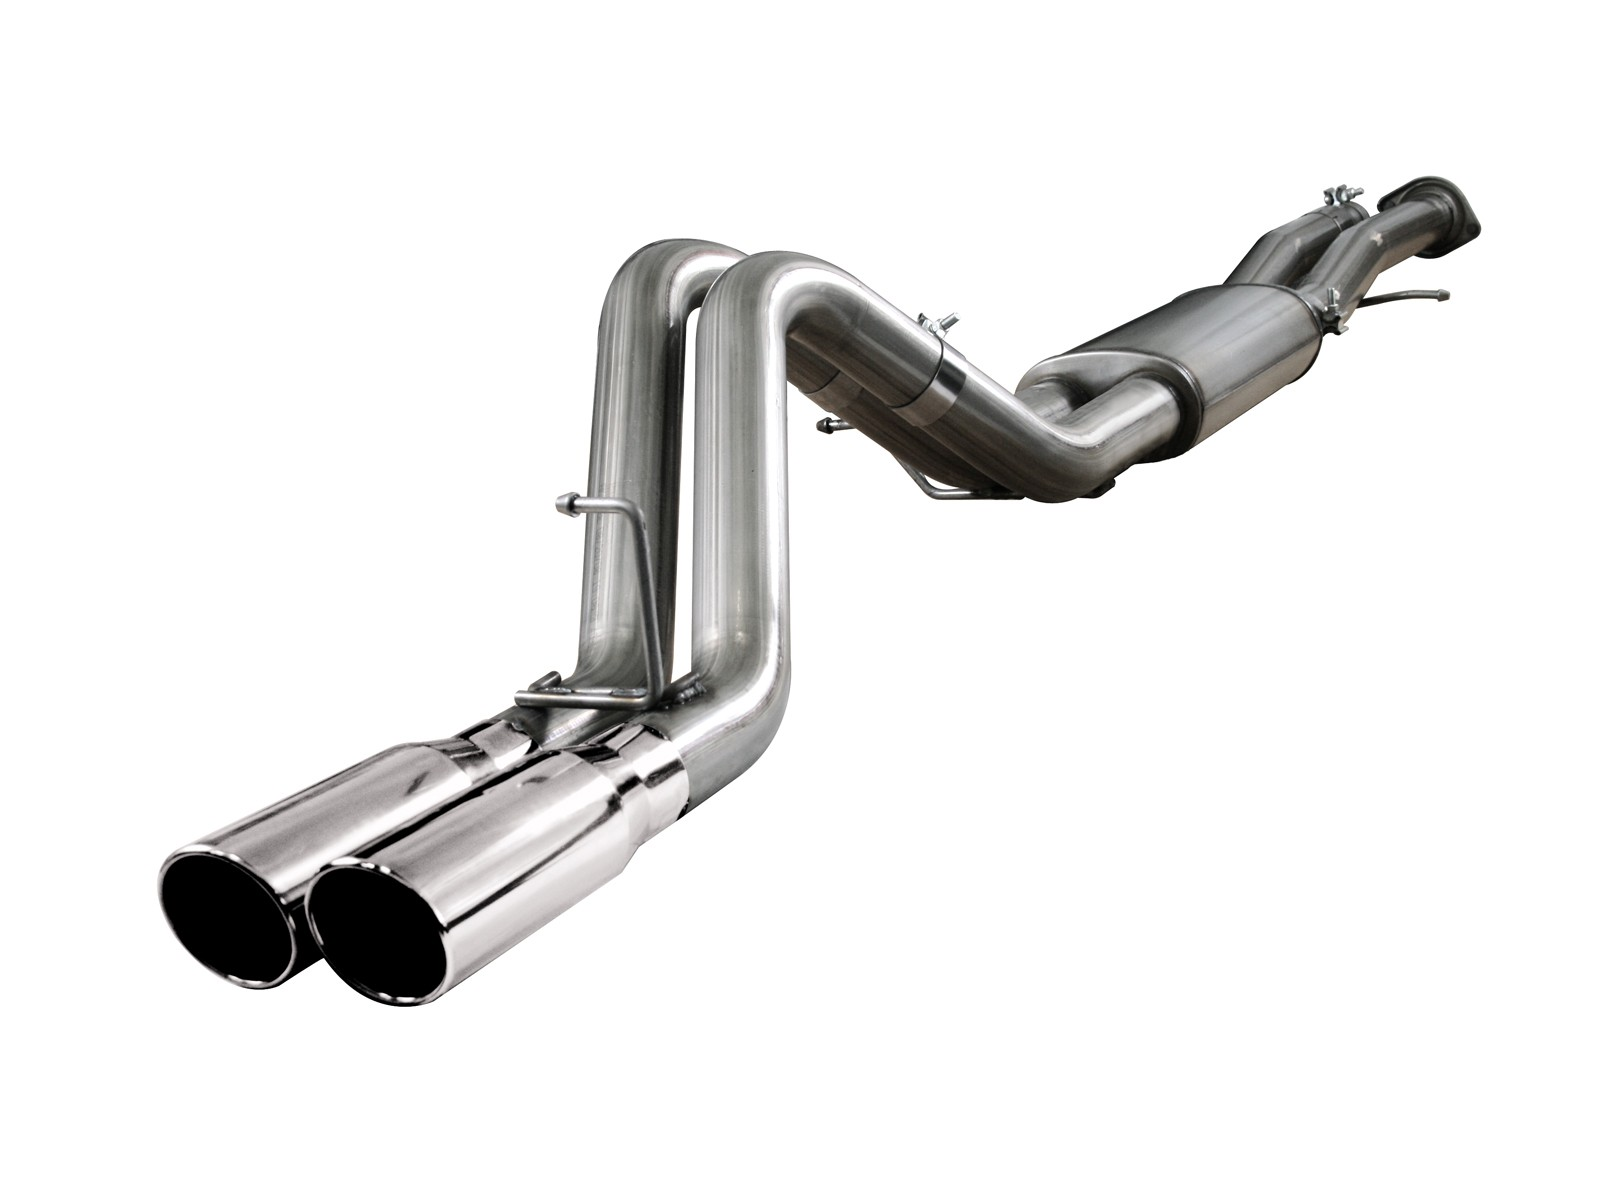 """aFe POWER 49-44010 MACH Force-Xp 3"""" 409 Stainless Steel Cat-Back Exhaust System"""